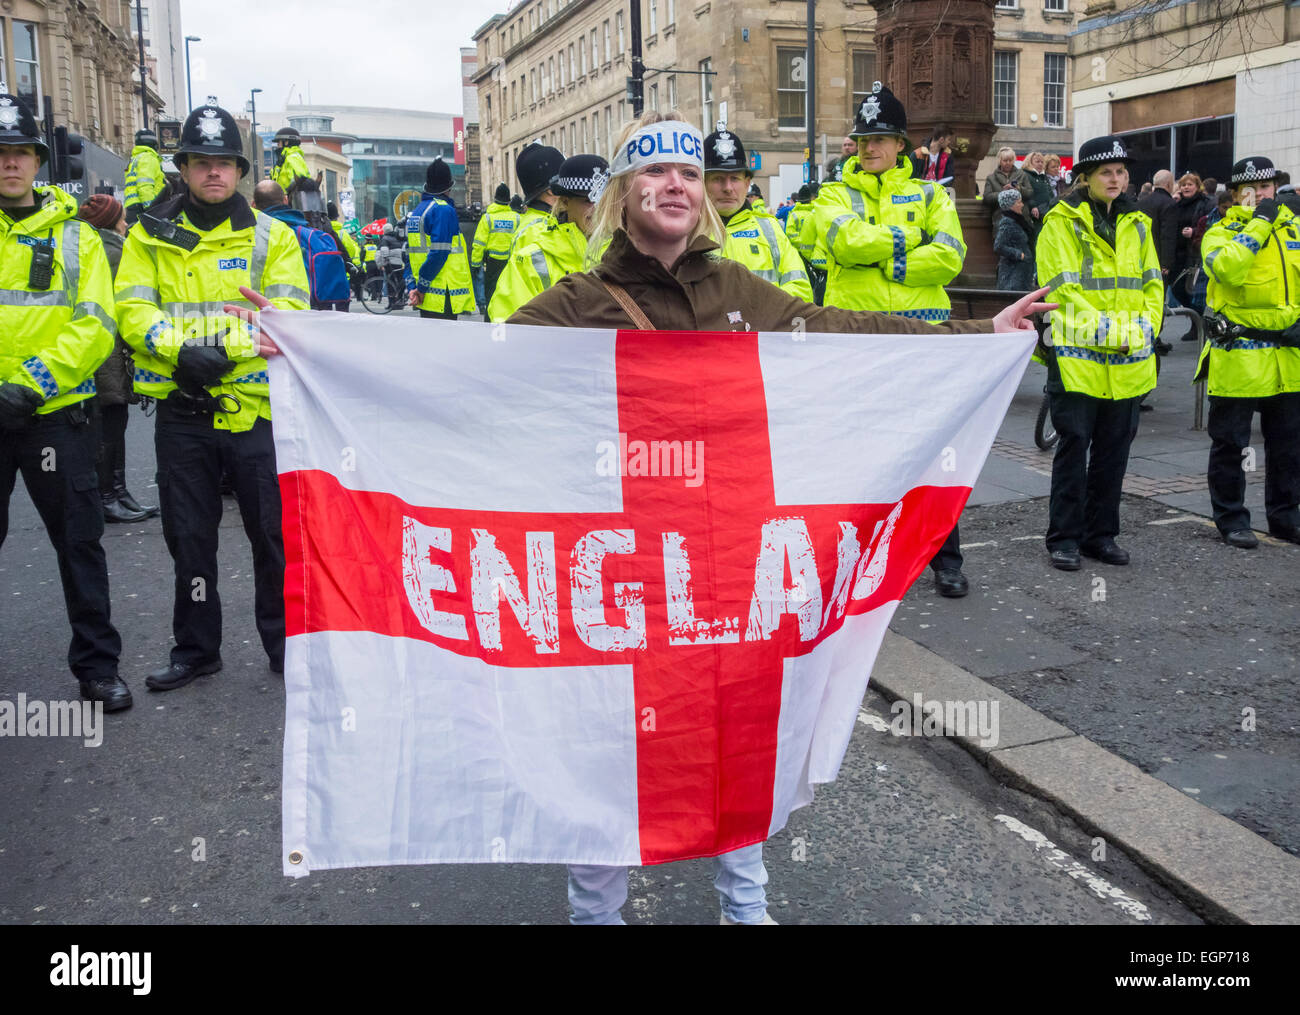 A woman holds an England flag in front of a police line at Pegida protest in Newcastle upon Tyne, England. UK - Stock Image